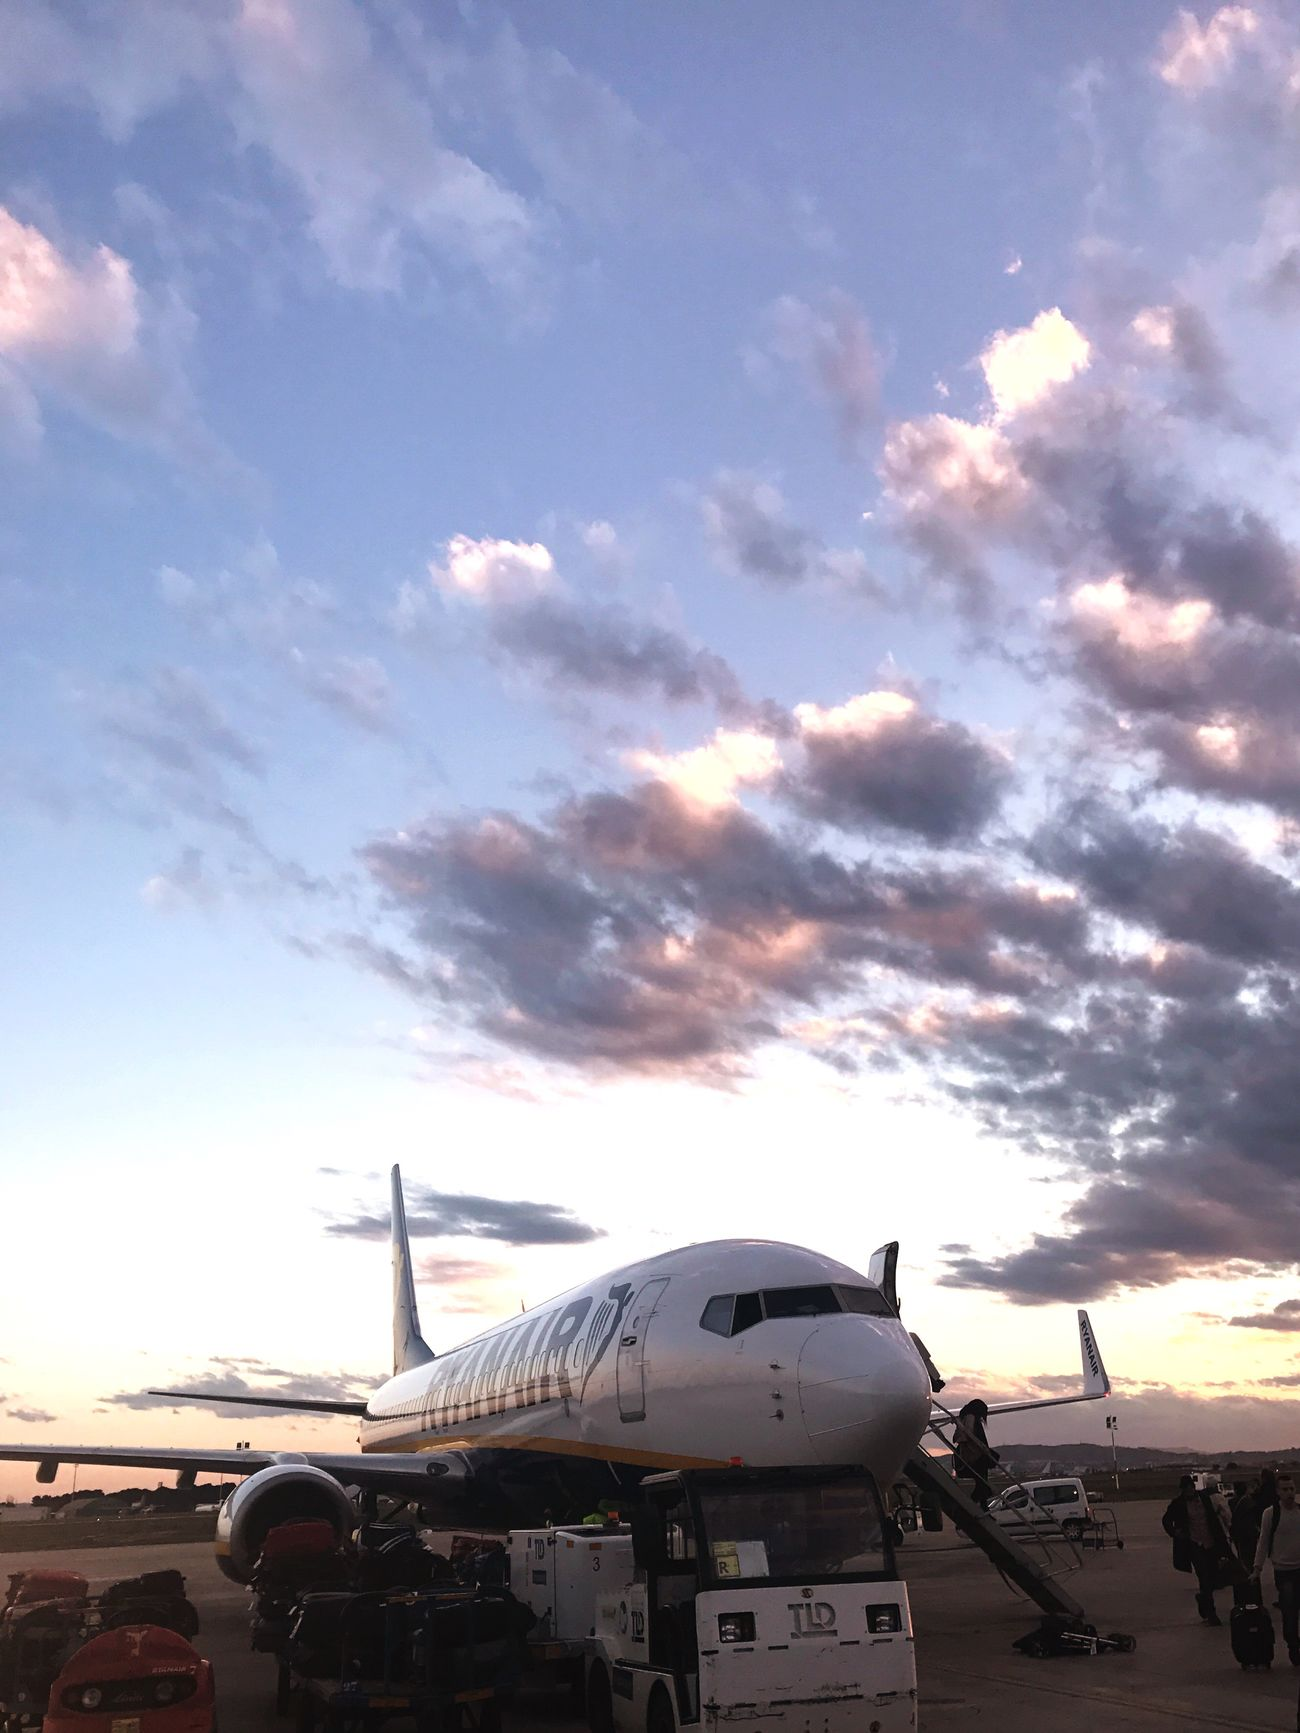 Valencia's sky is beautiful Airplane Airport Transportation Sky Airport Runway Travel Air Vehicle Outdoors Passenger Boarding Bridge Commercial Airplane Day No People